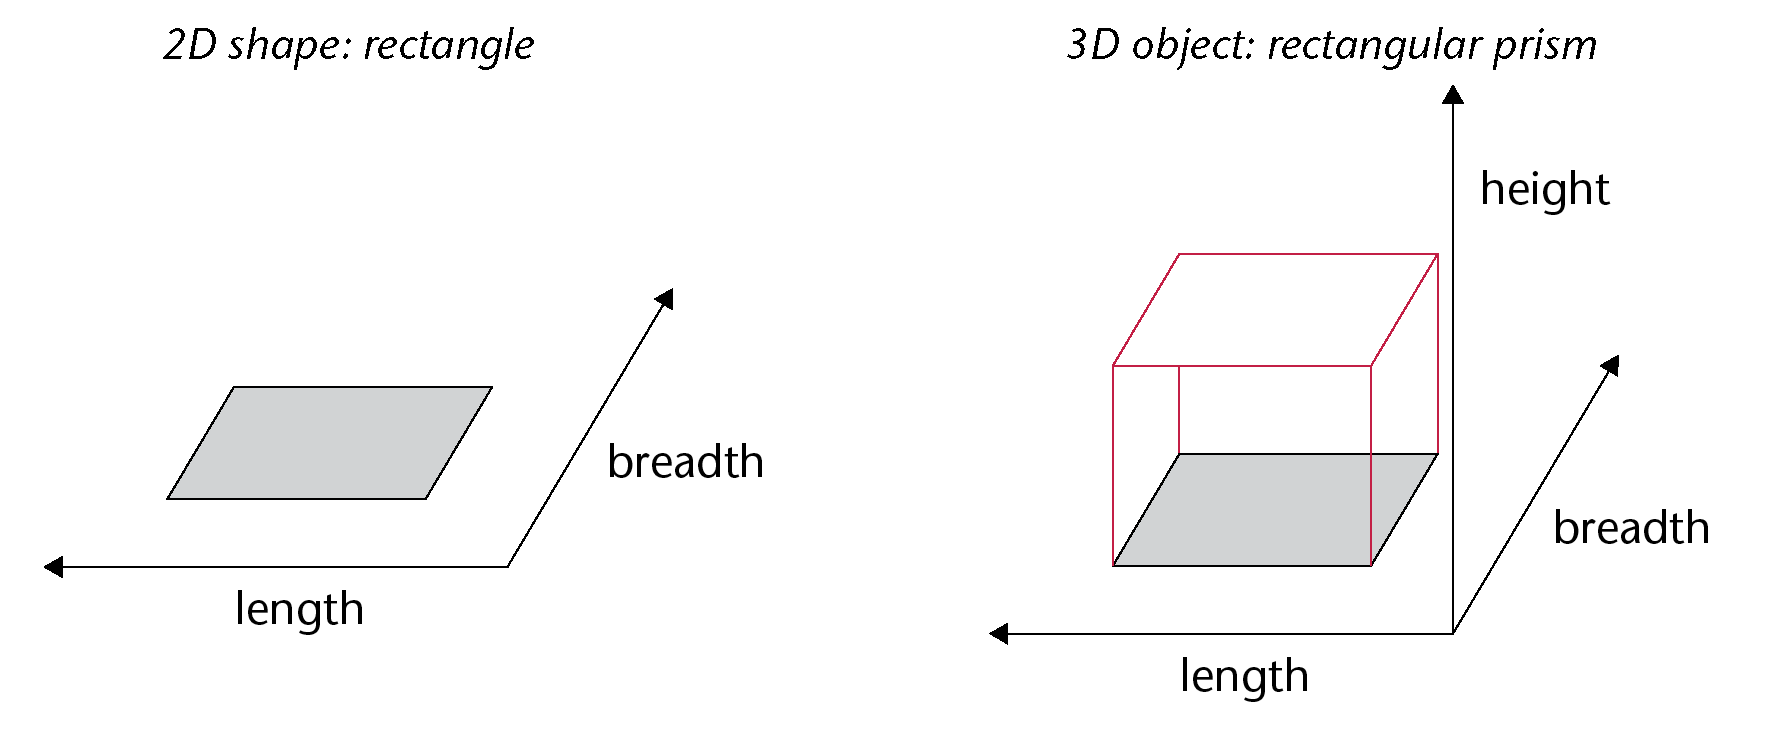 3d Objects Therefore Take Up Space In A Way That 2d Shapes Do Not We Can  Measure The Amount Of Space That 3d Objects Take Up